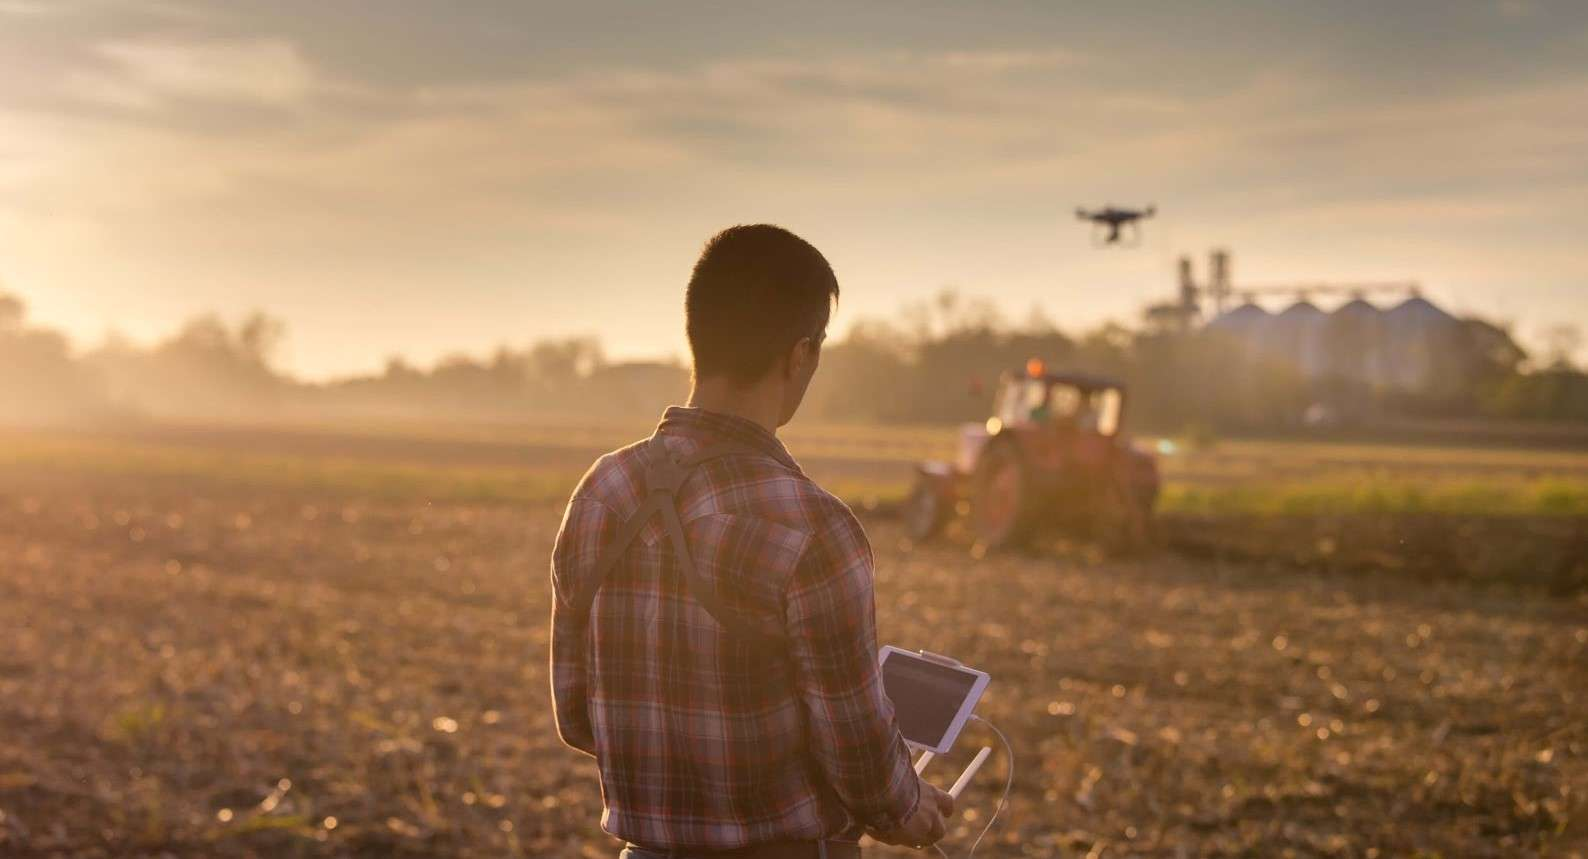 DRONE TECHNOLOGY IN INDIAN AGRICULTURE, MAPPING, SURVIVING